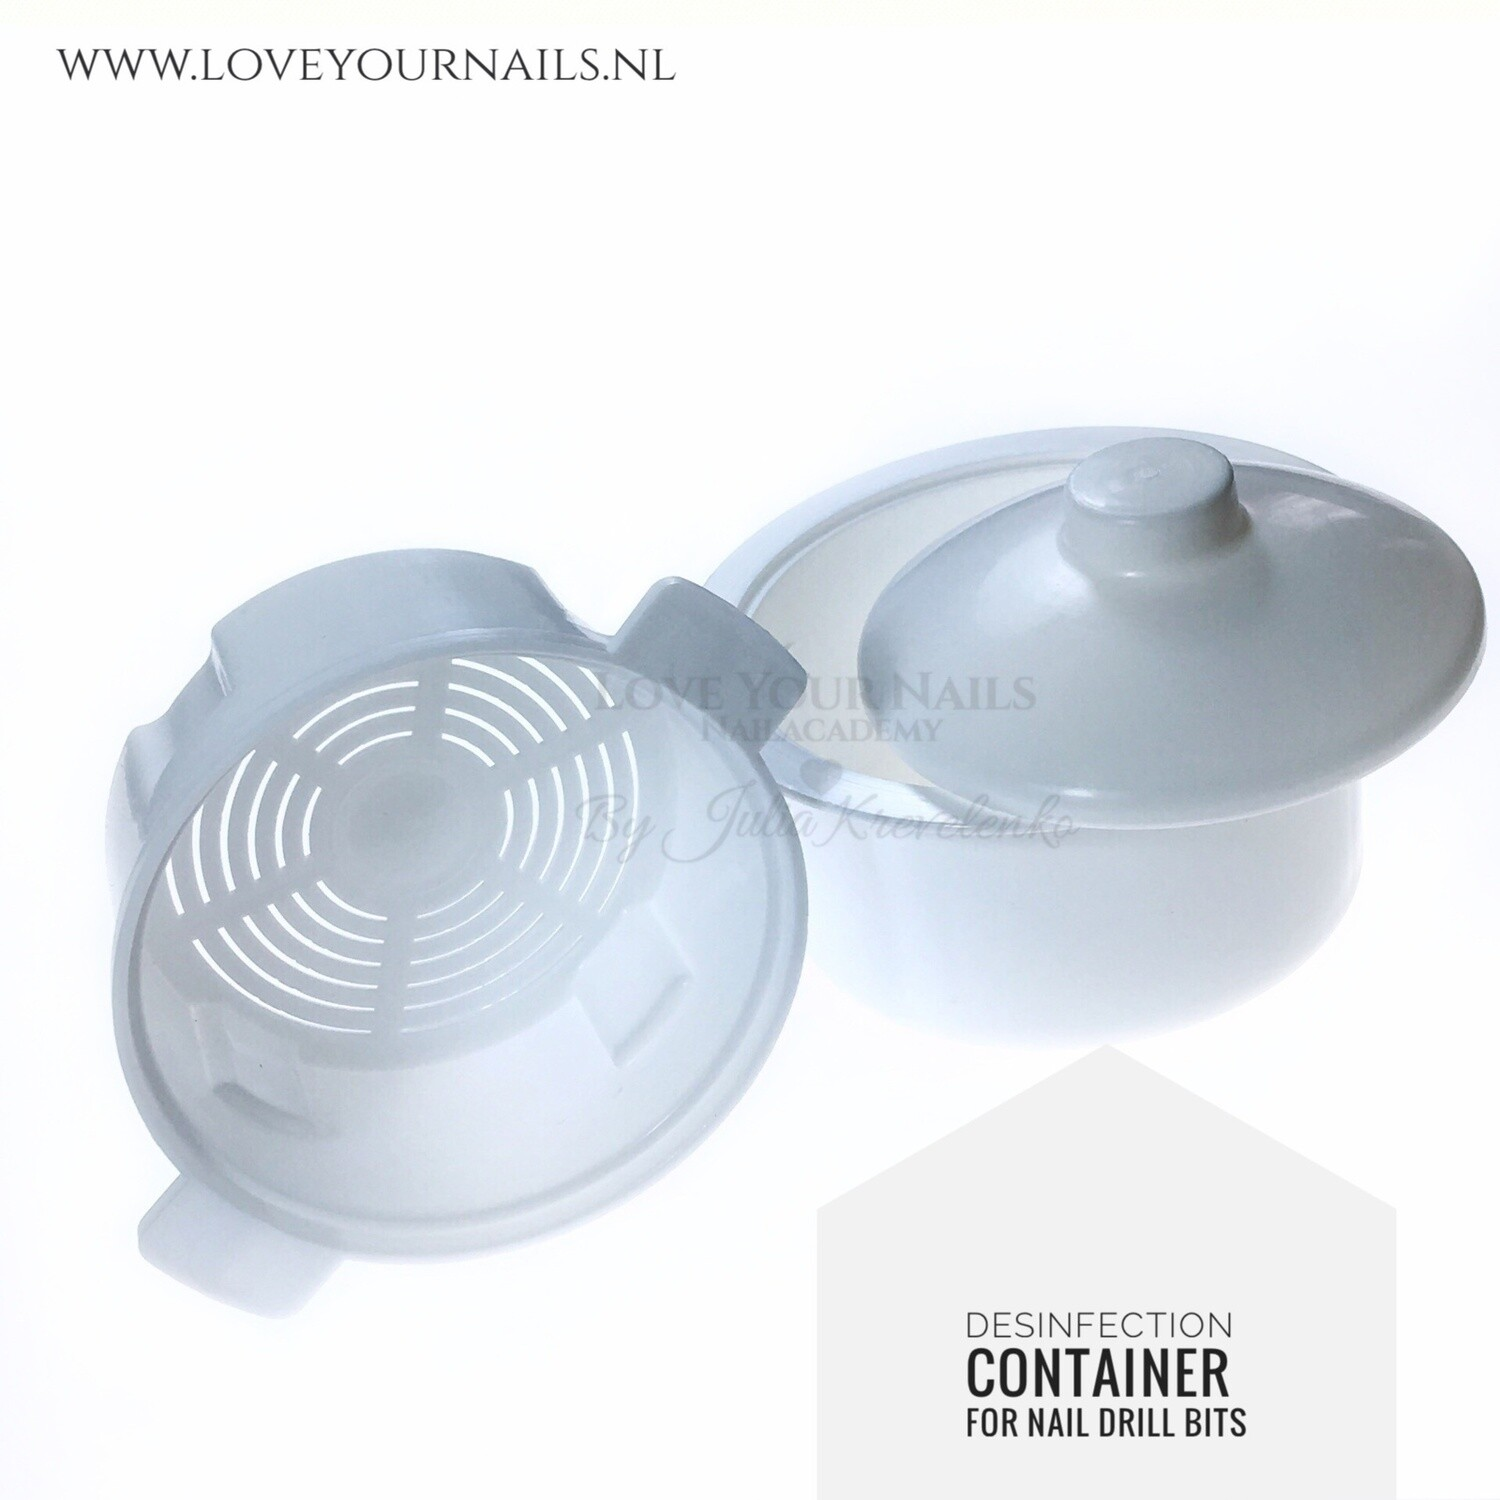 Disinfection container for bits